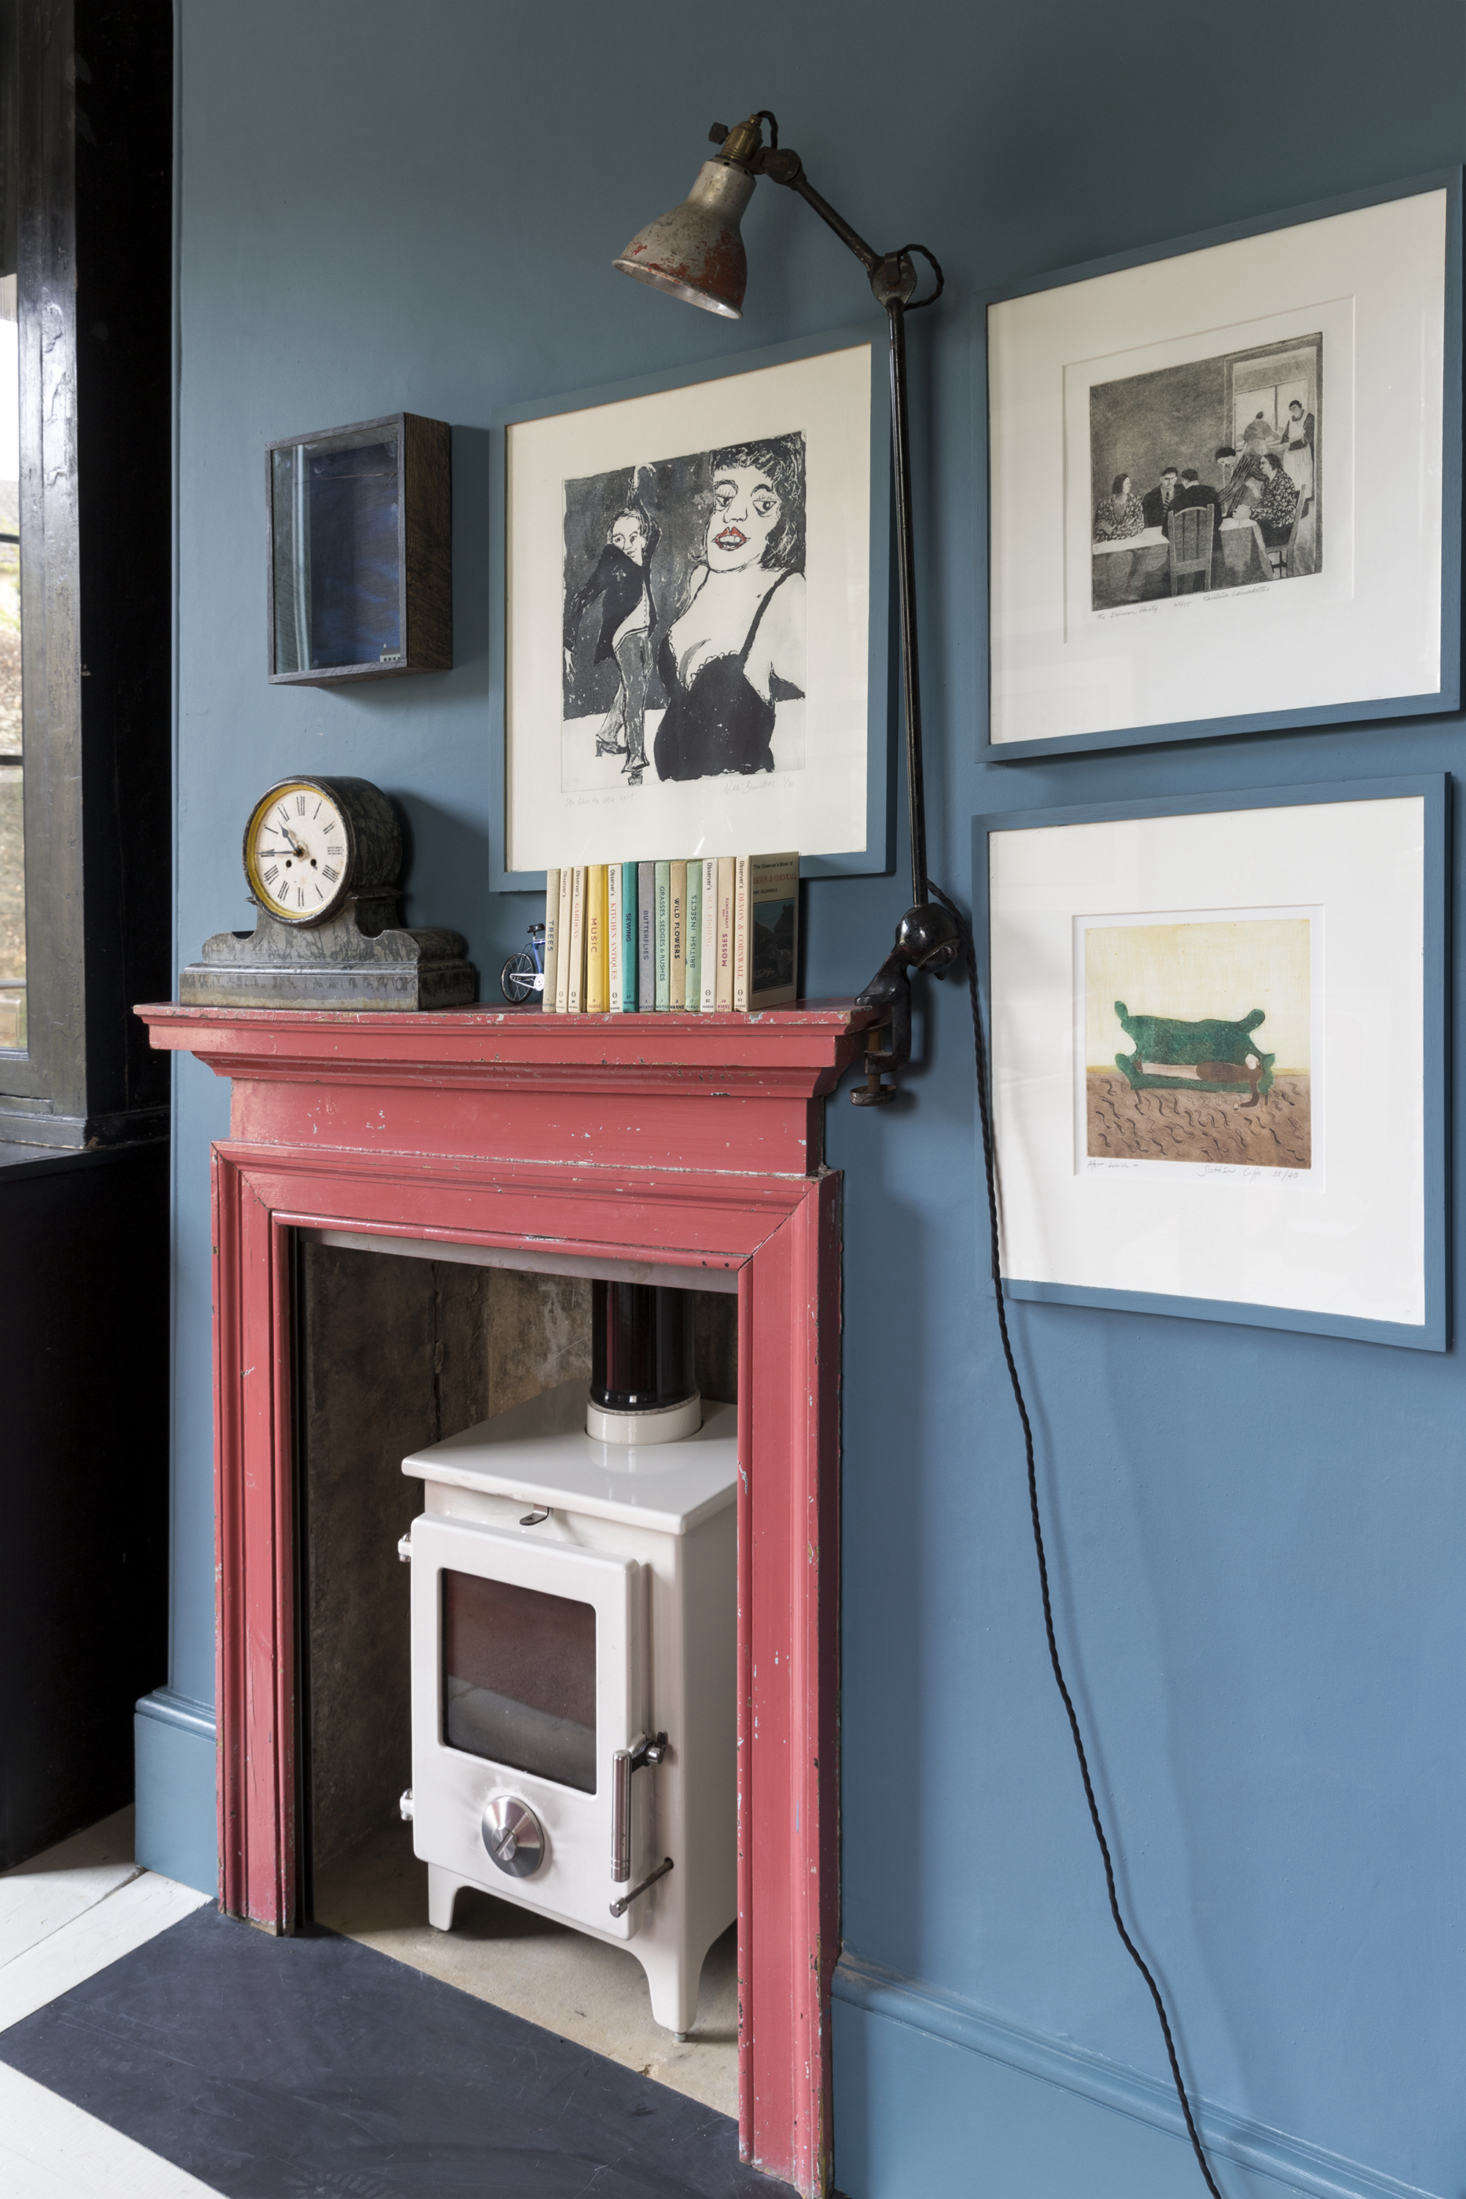 An antique mantel in its original paint was added to the room along with a wood-burning stove and vintage workman&#8